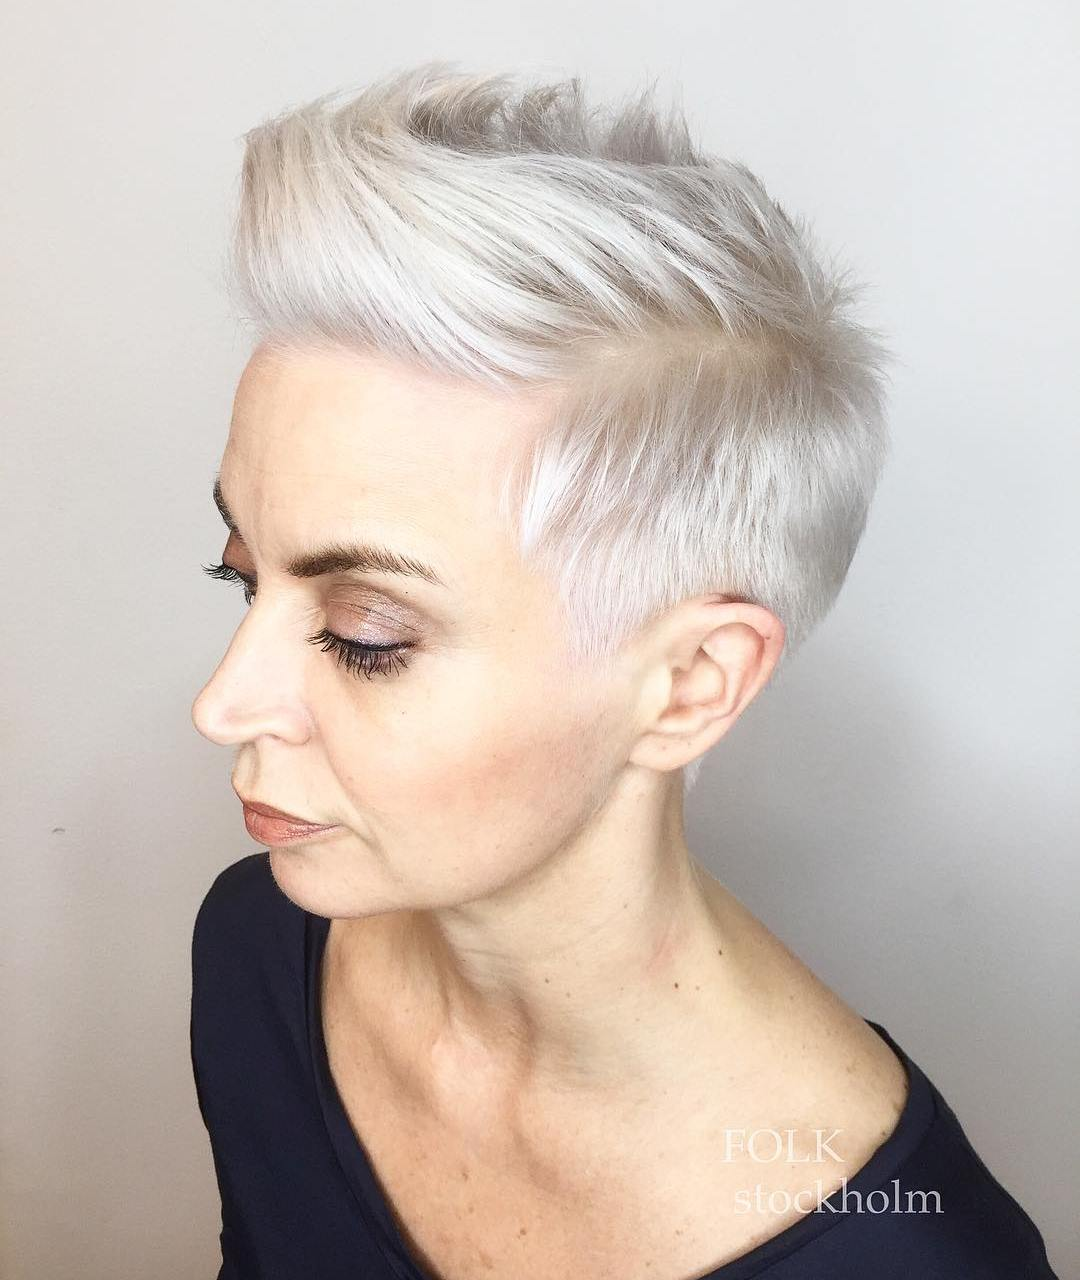 Bold Buzz Cut with Choppy Top